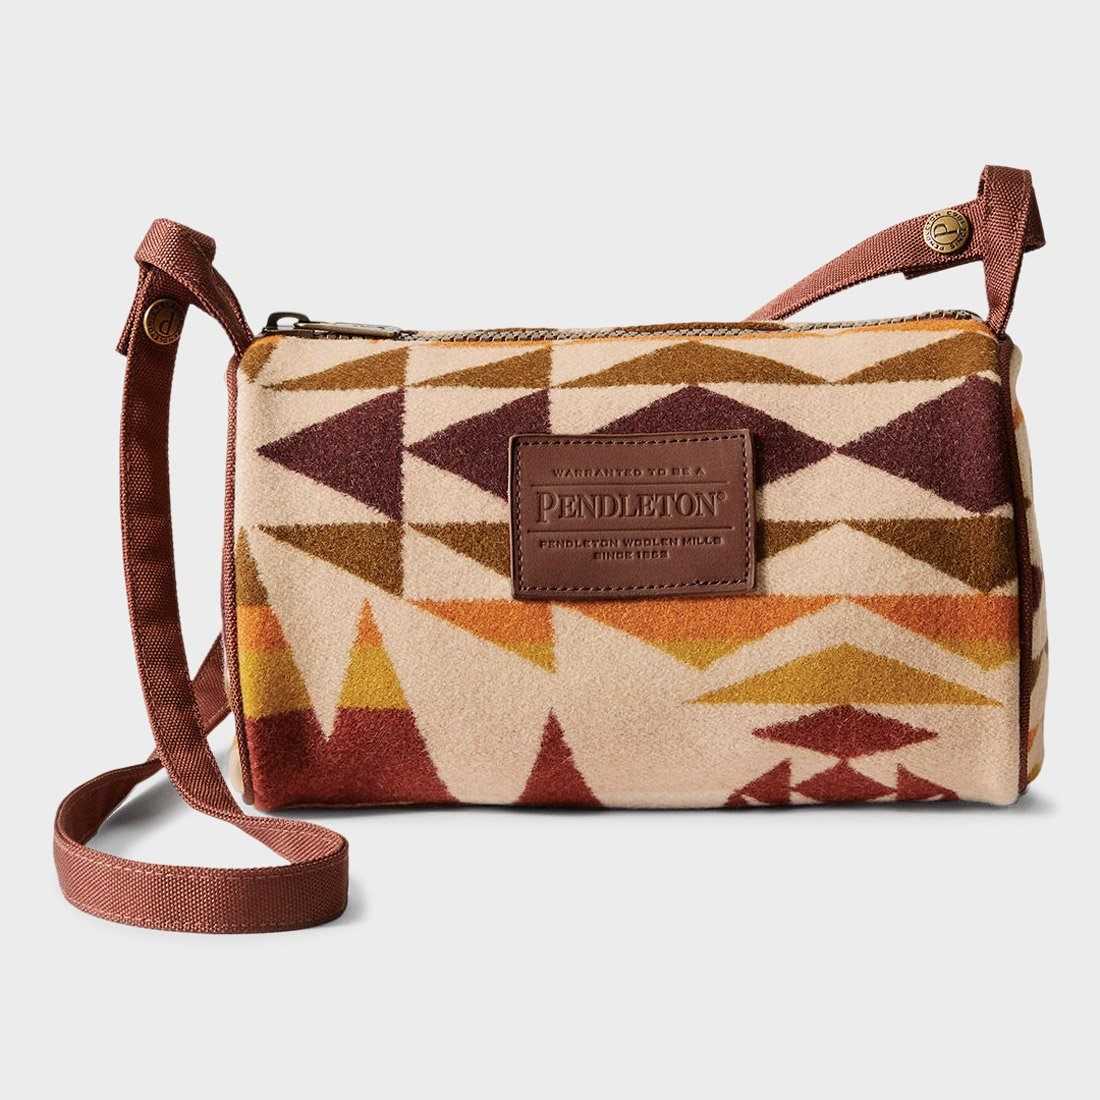 Pendleton Travel Kit With Strap Crescent Butte